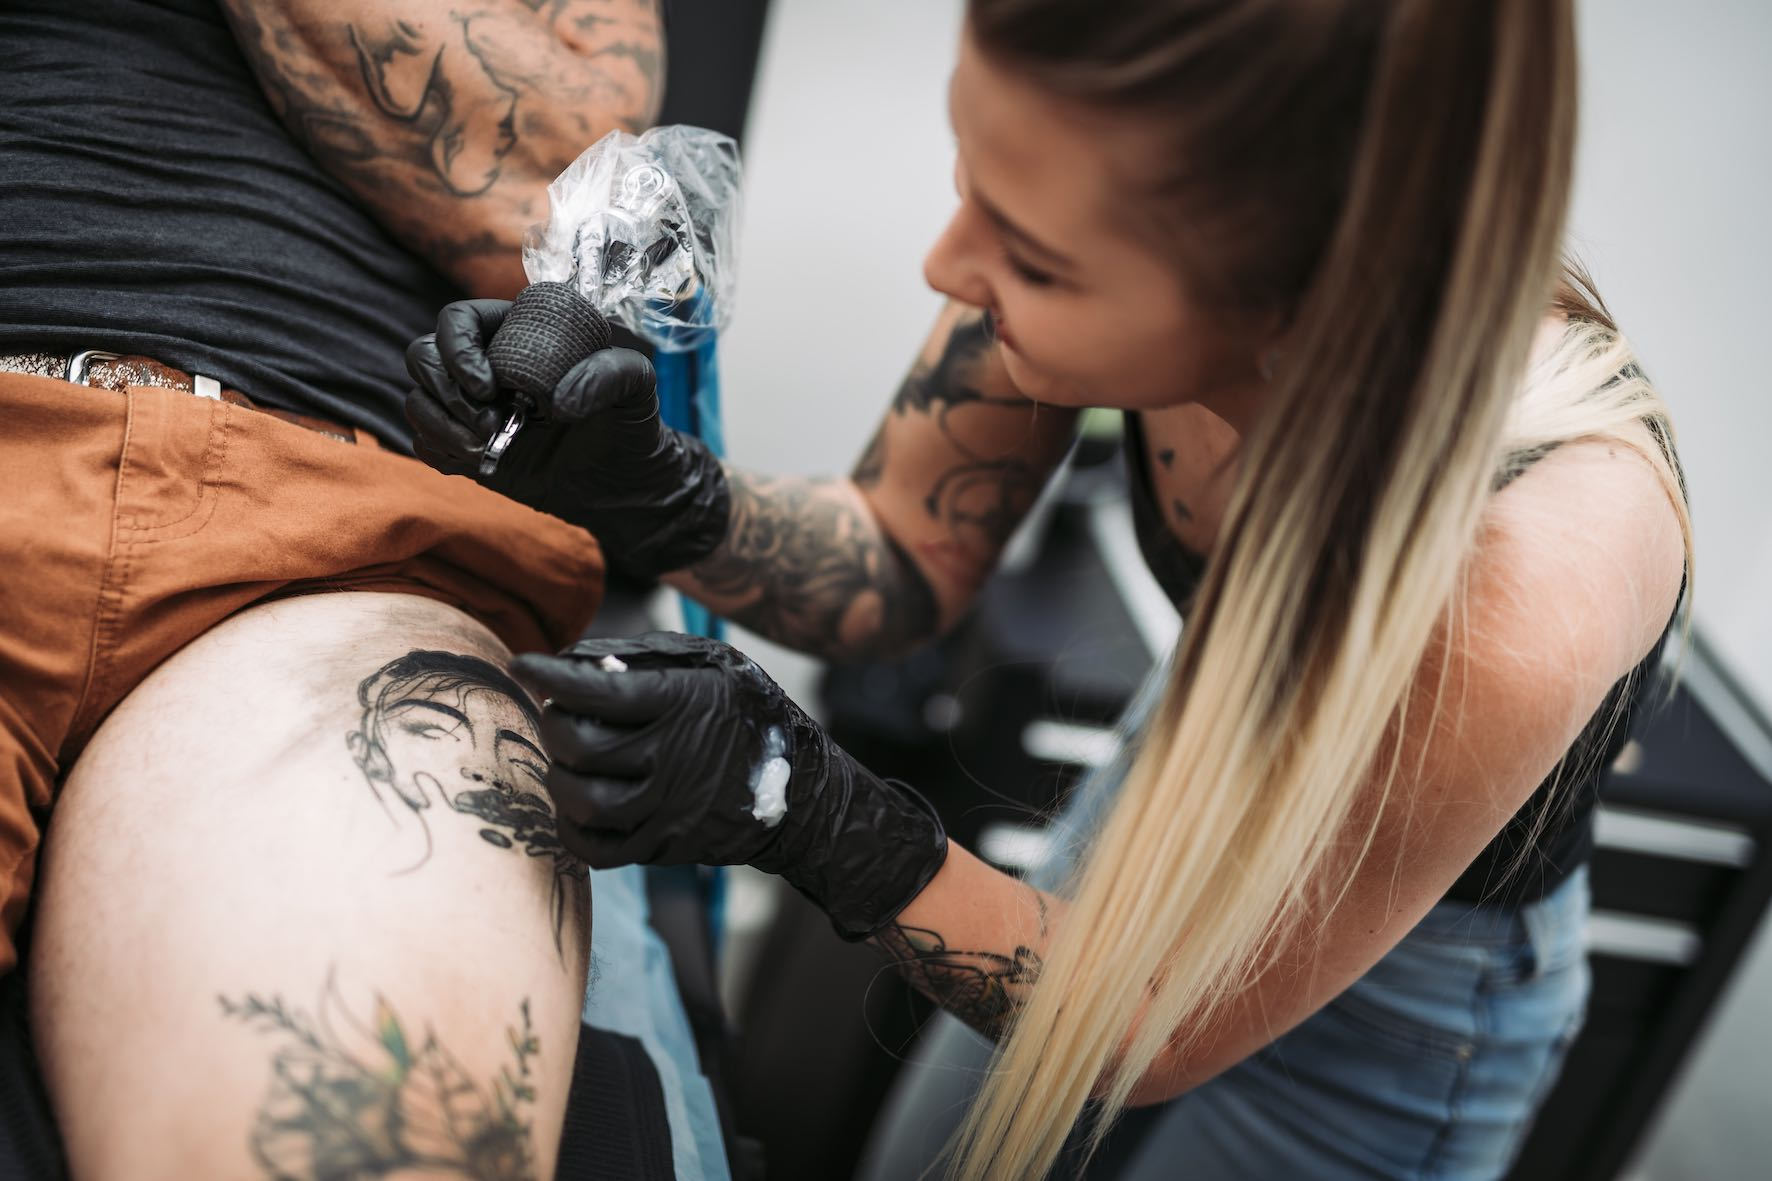 Bronwyn Washer working out of the Canvas Cultique tattoo shop in Parkhurst